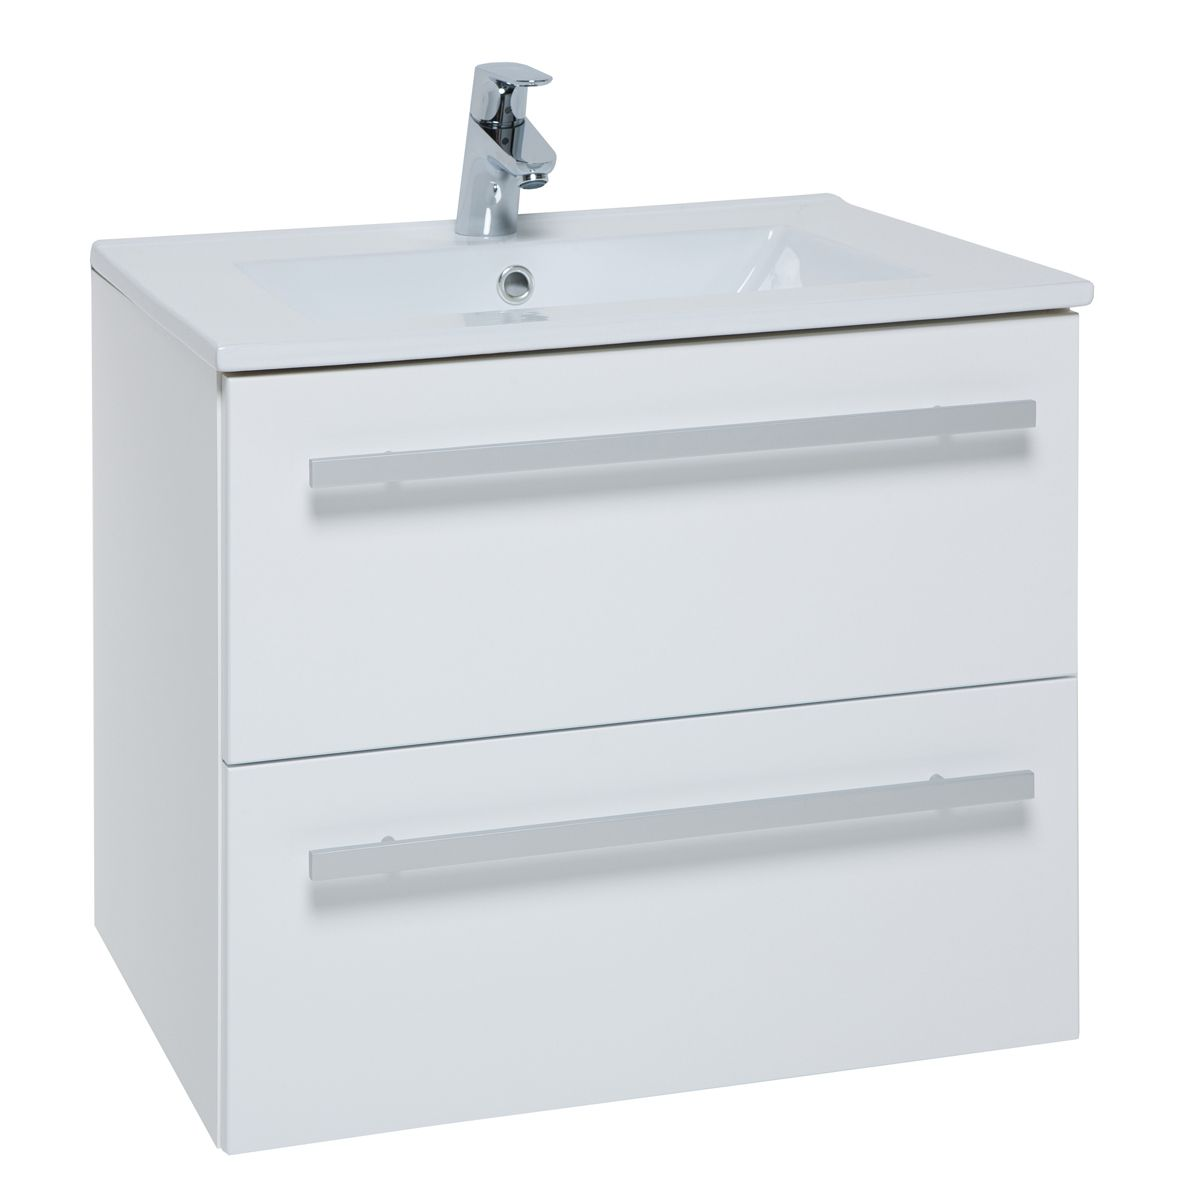 Kartell Purity White 2 Drawer Wall Mounted Vanity Unit 600mm